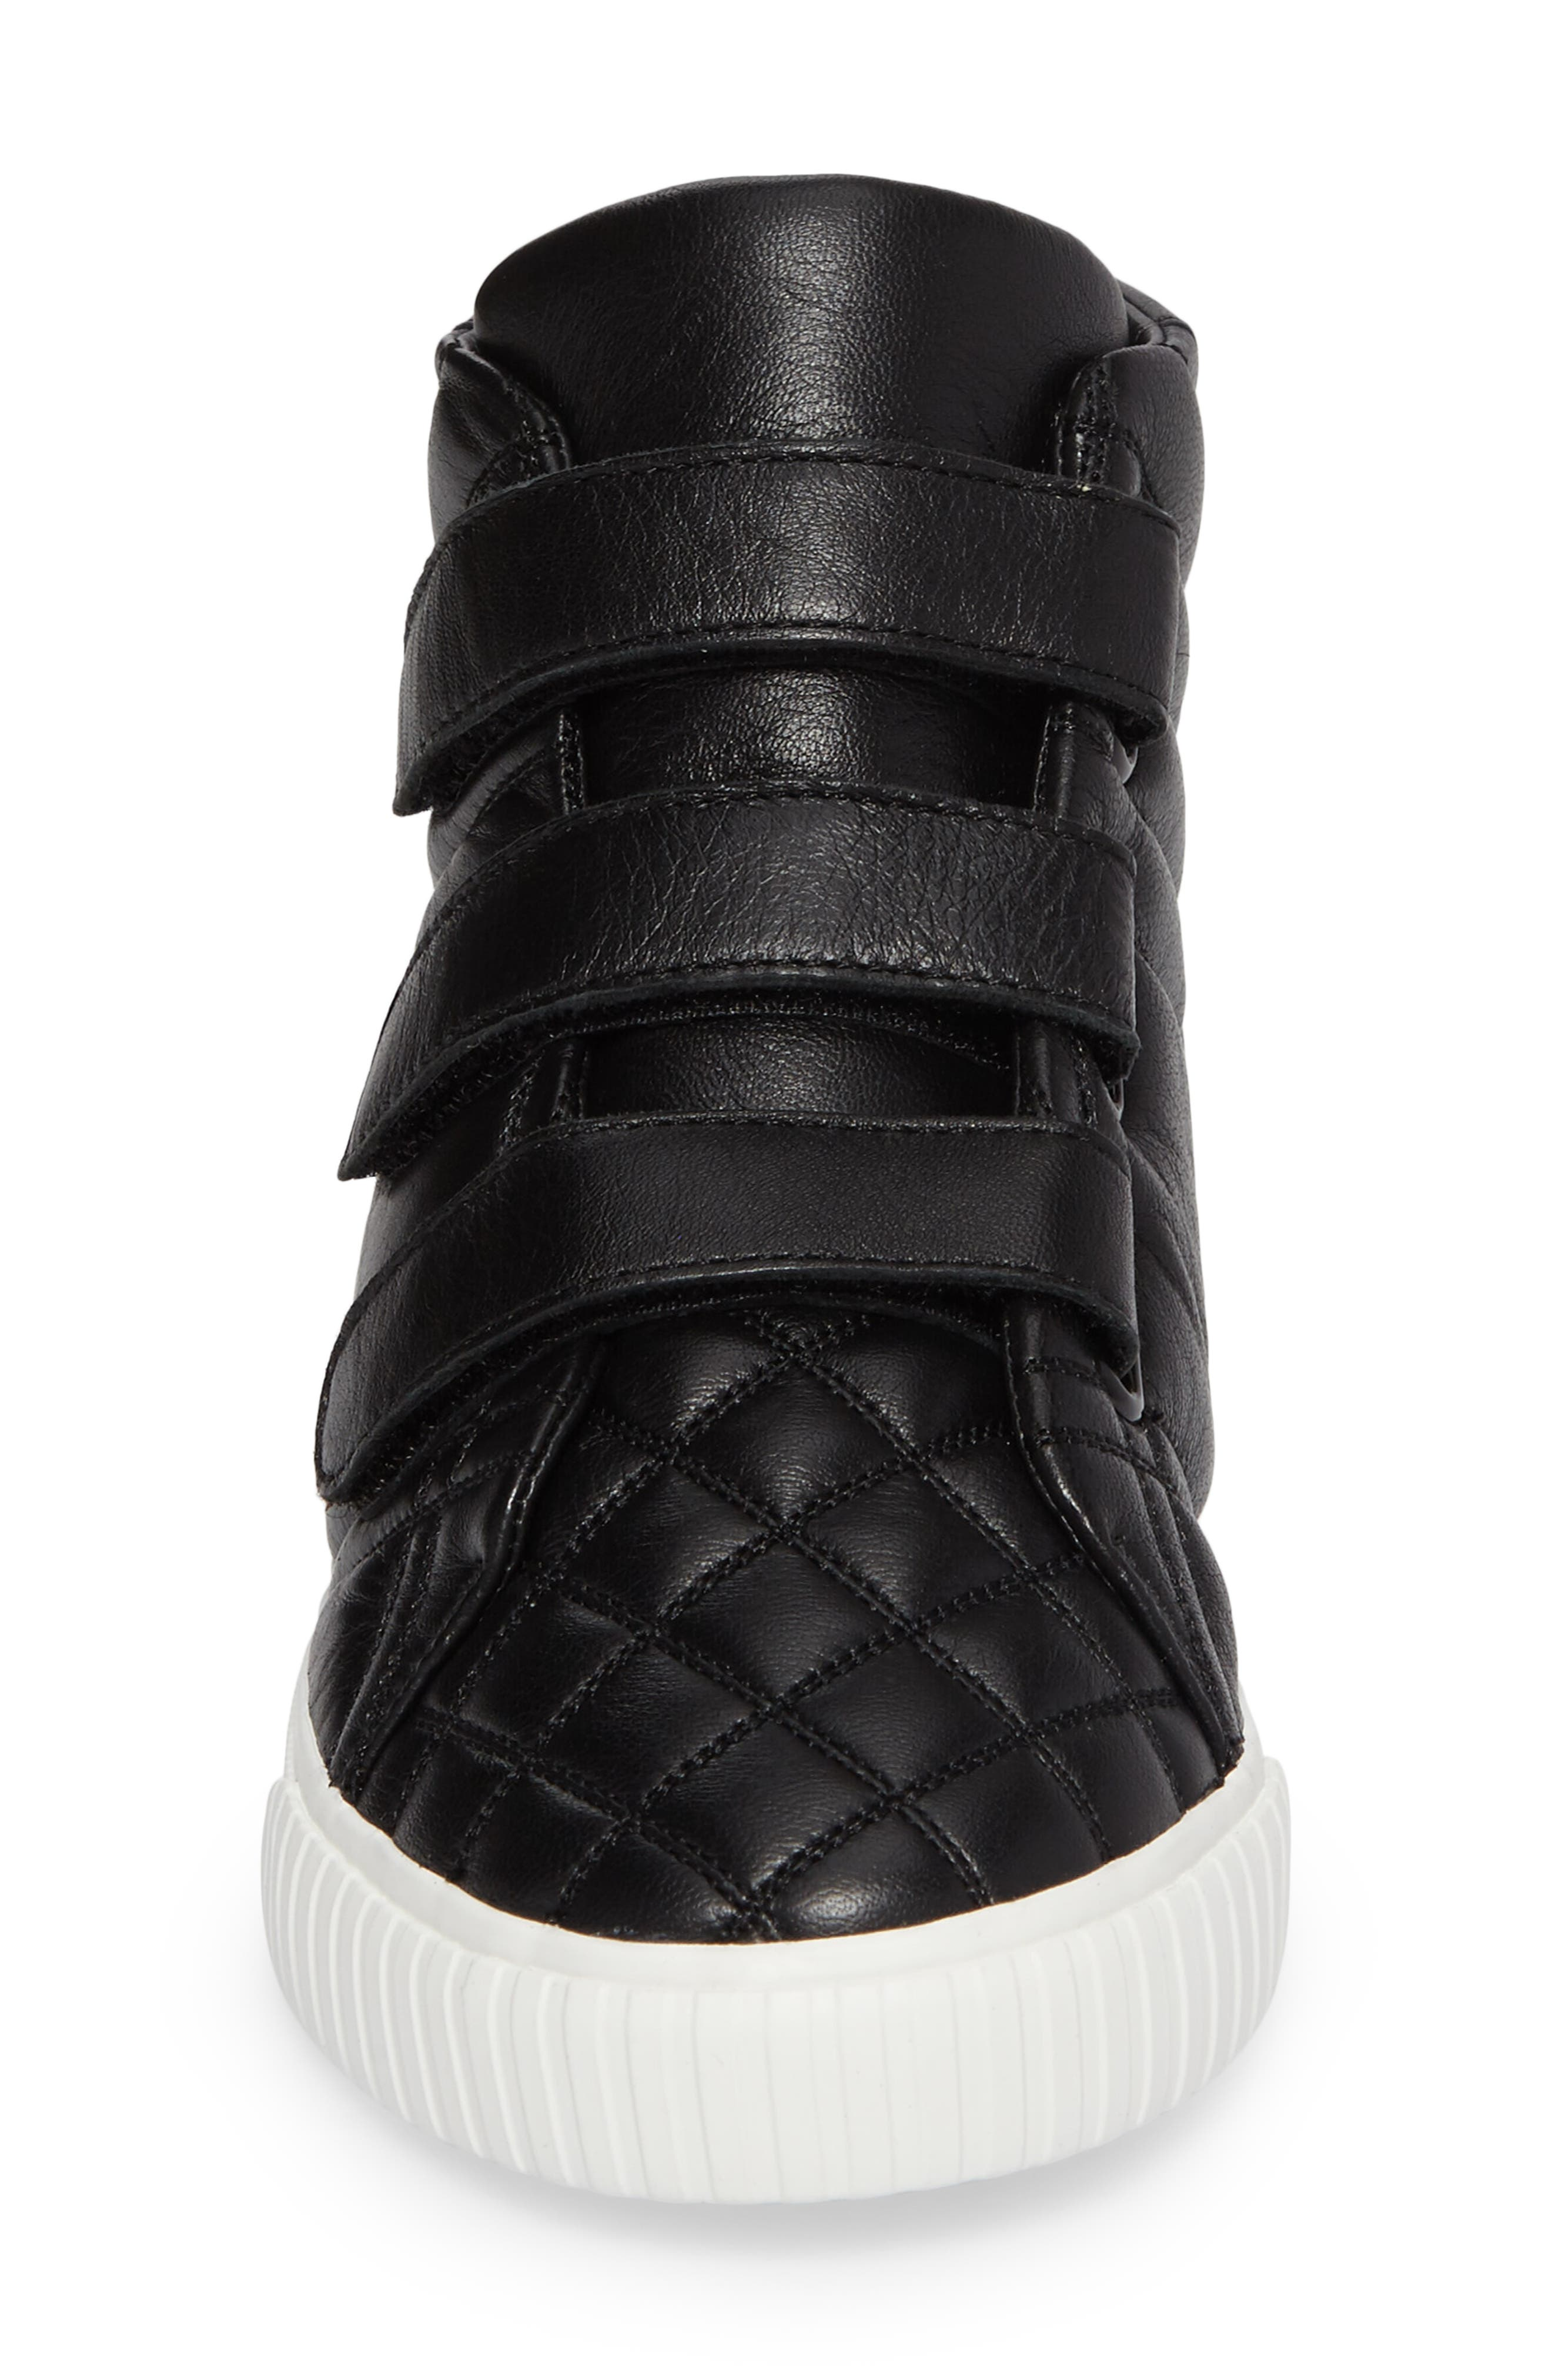 Sturrock Quilted High Top Sneaker,                             Alternate thumbnail 4, color,                             001